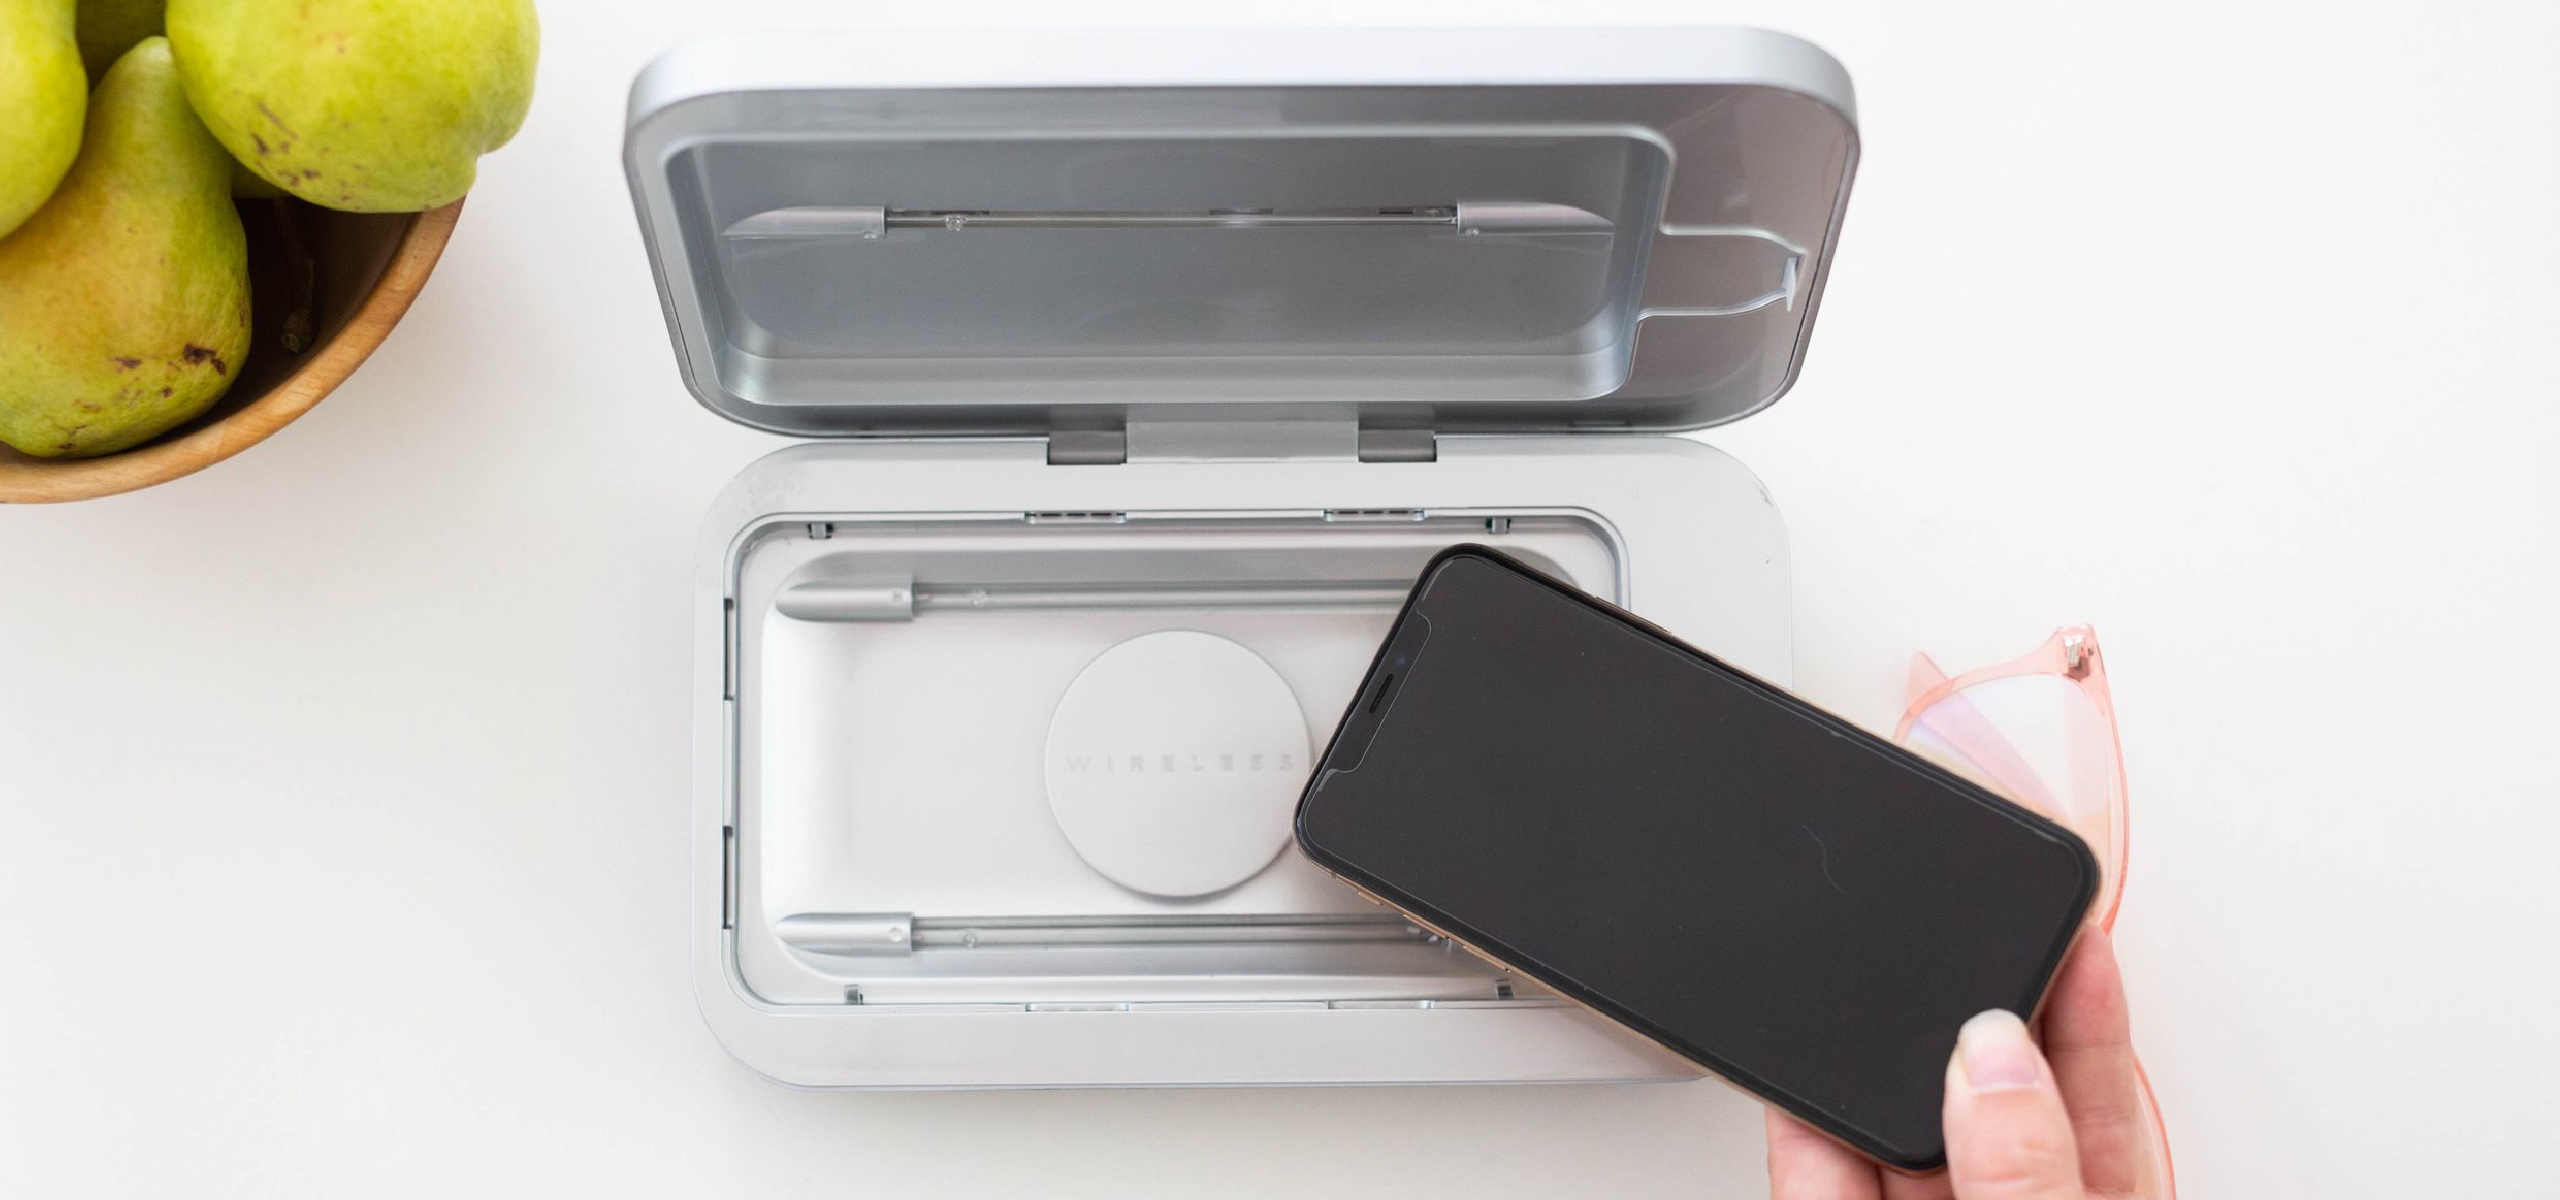 PhoneSoap Wireless on kitchen counter